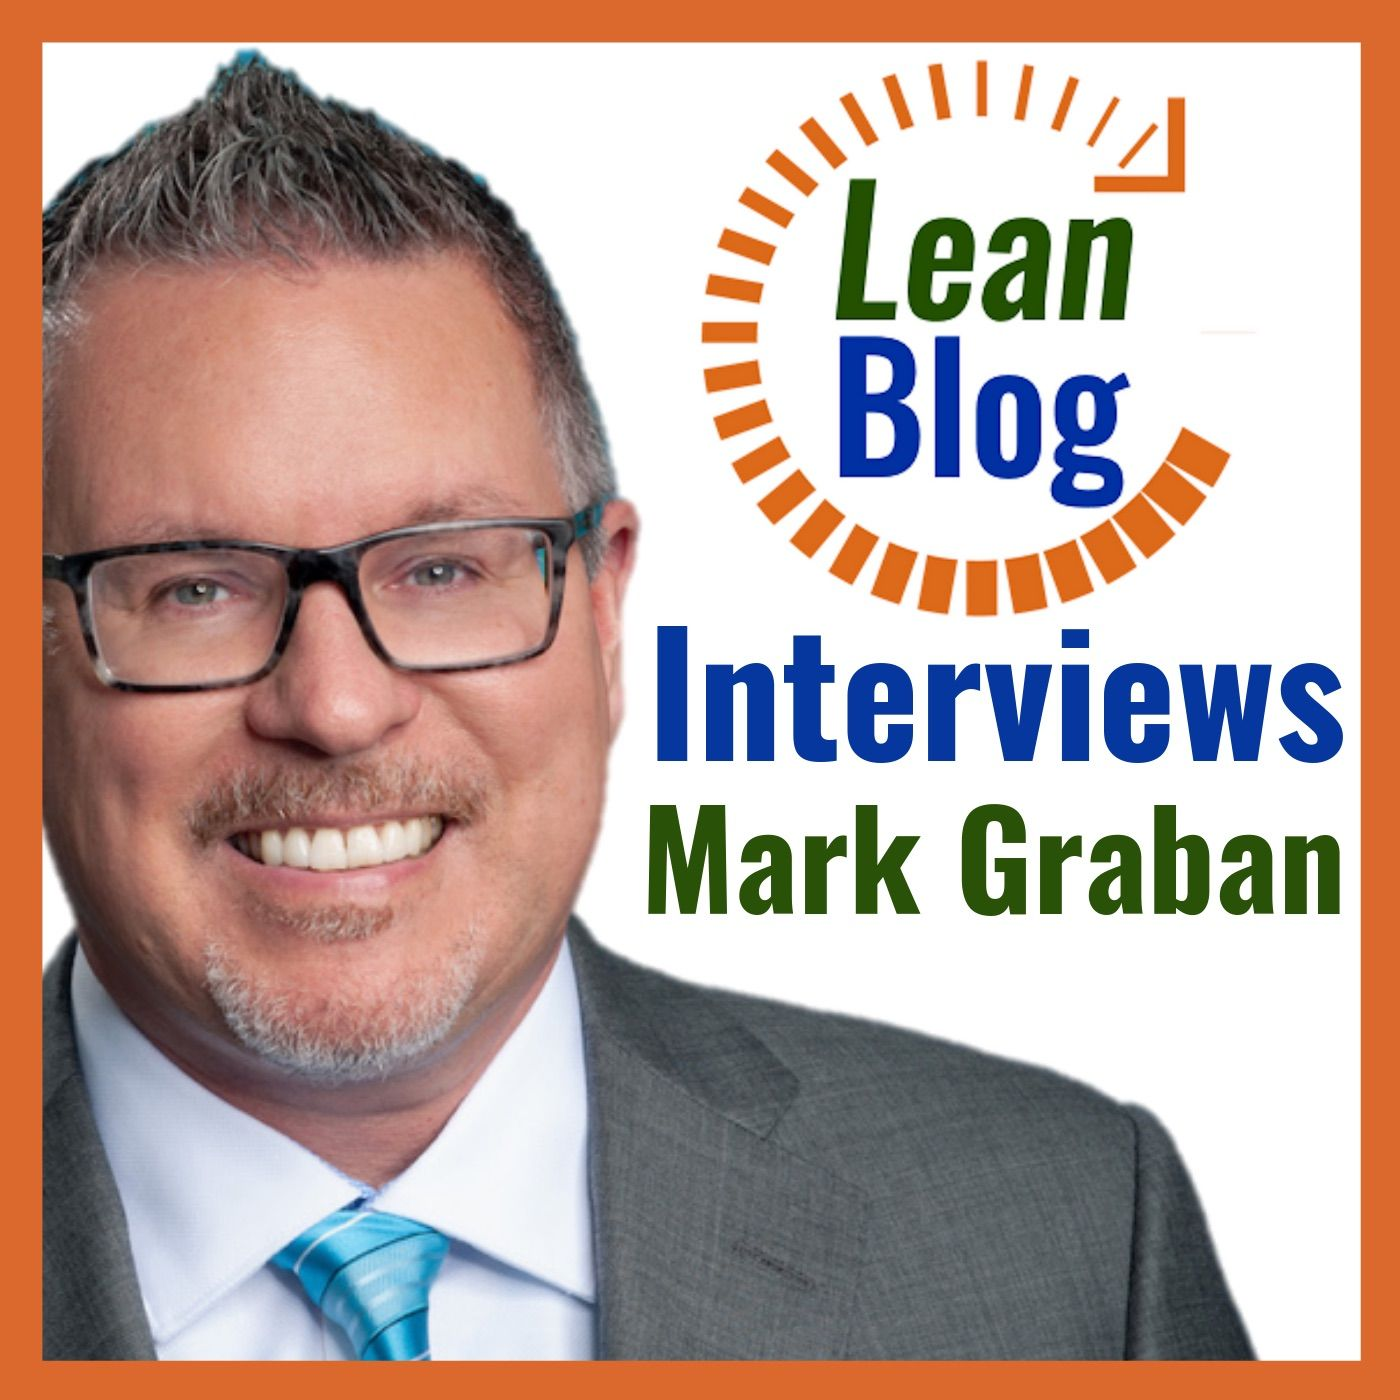 Lean Blog Interviews Podcast, with Mark Graban